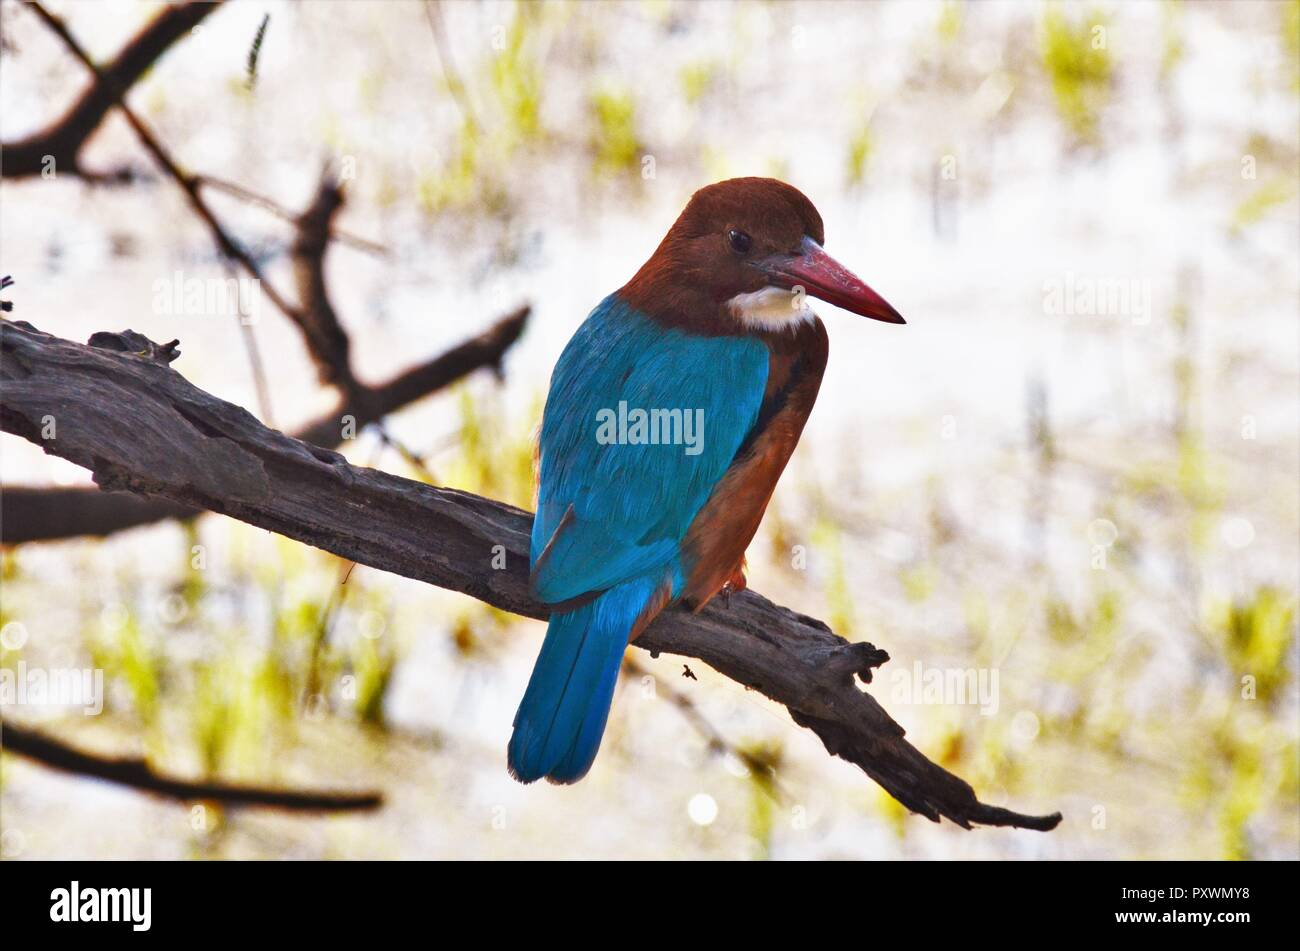 This White-Throated Kingfisher was pretty bold and posed for the camera even when I was barely an arm's length away. - Stock Image